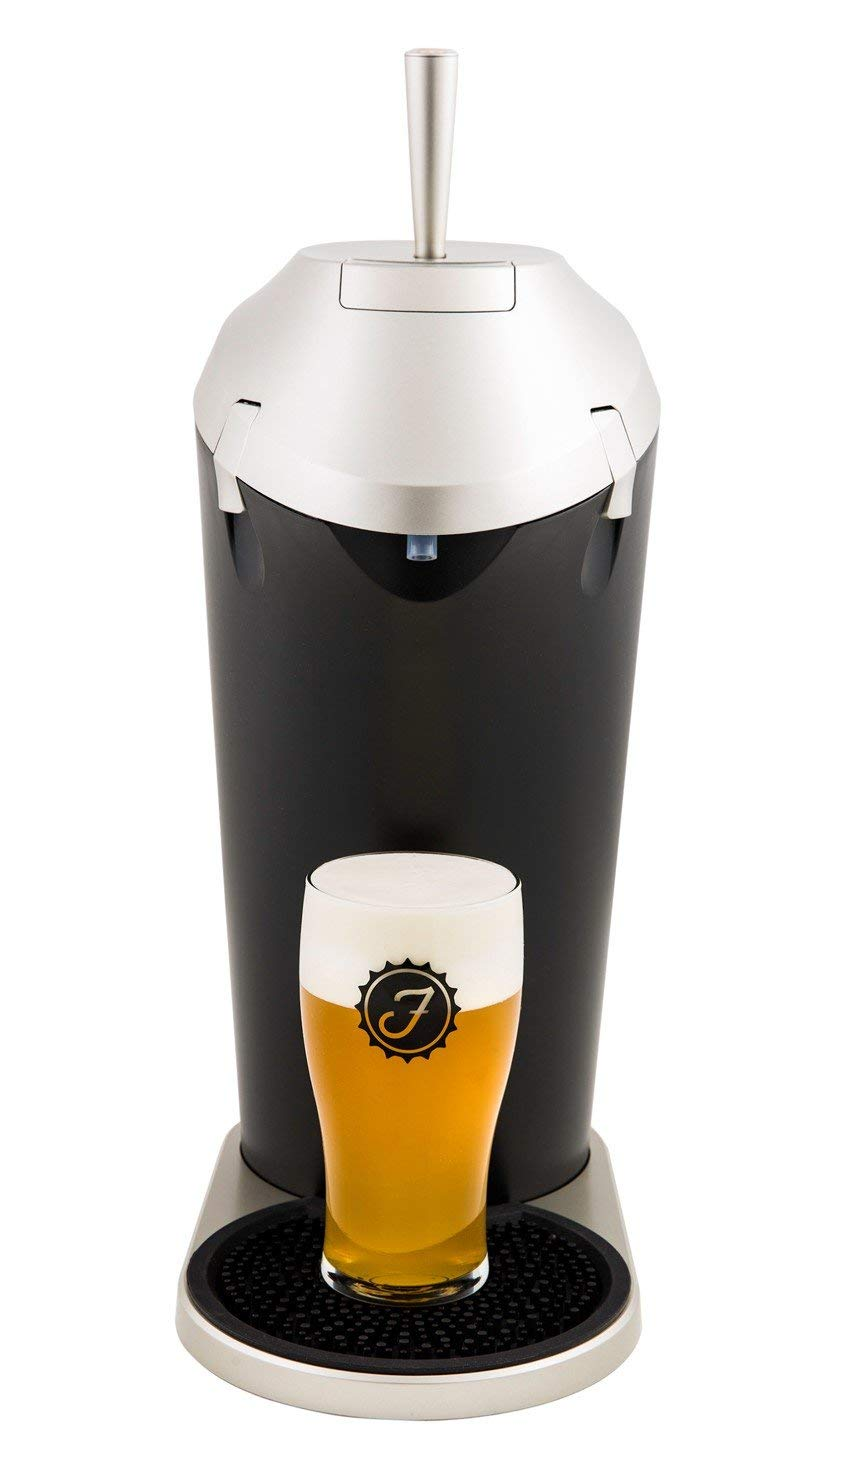 Fizzics Original. Portable Beer System with Fizzics Micro-foam Technology for a Bottle to Draft Experience (for 64 oz. growlers, cans and bottles). by Fizzics (Image #3)